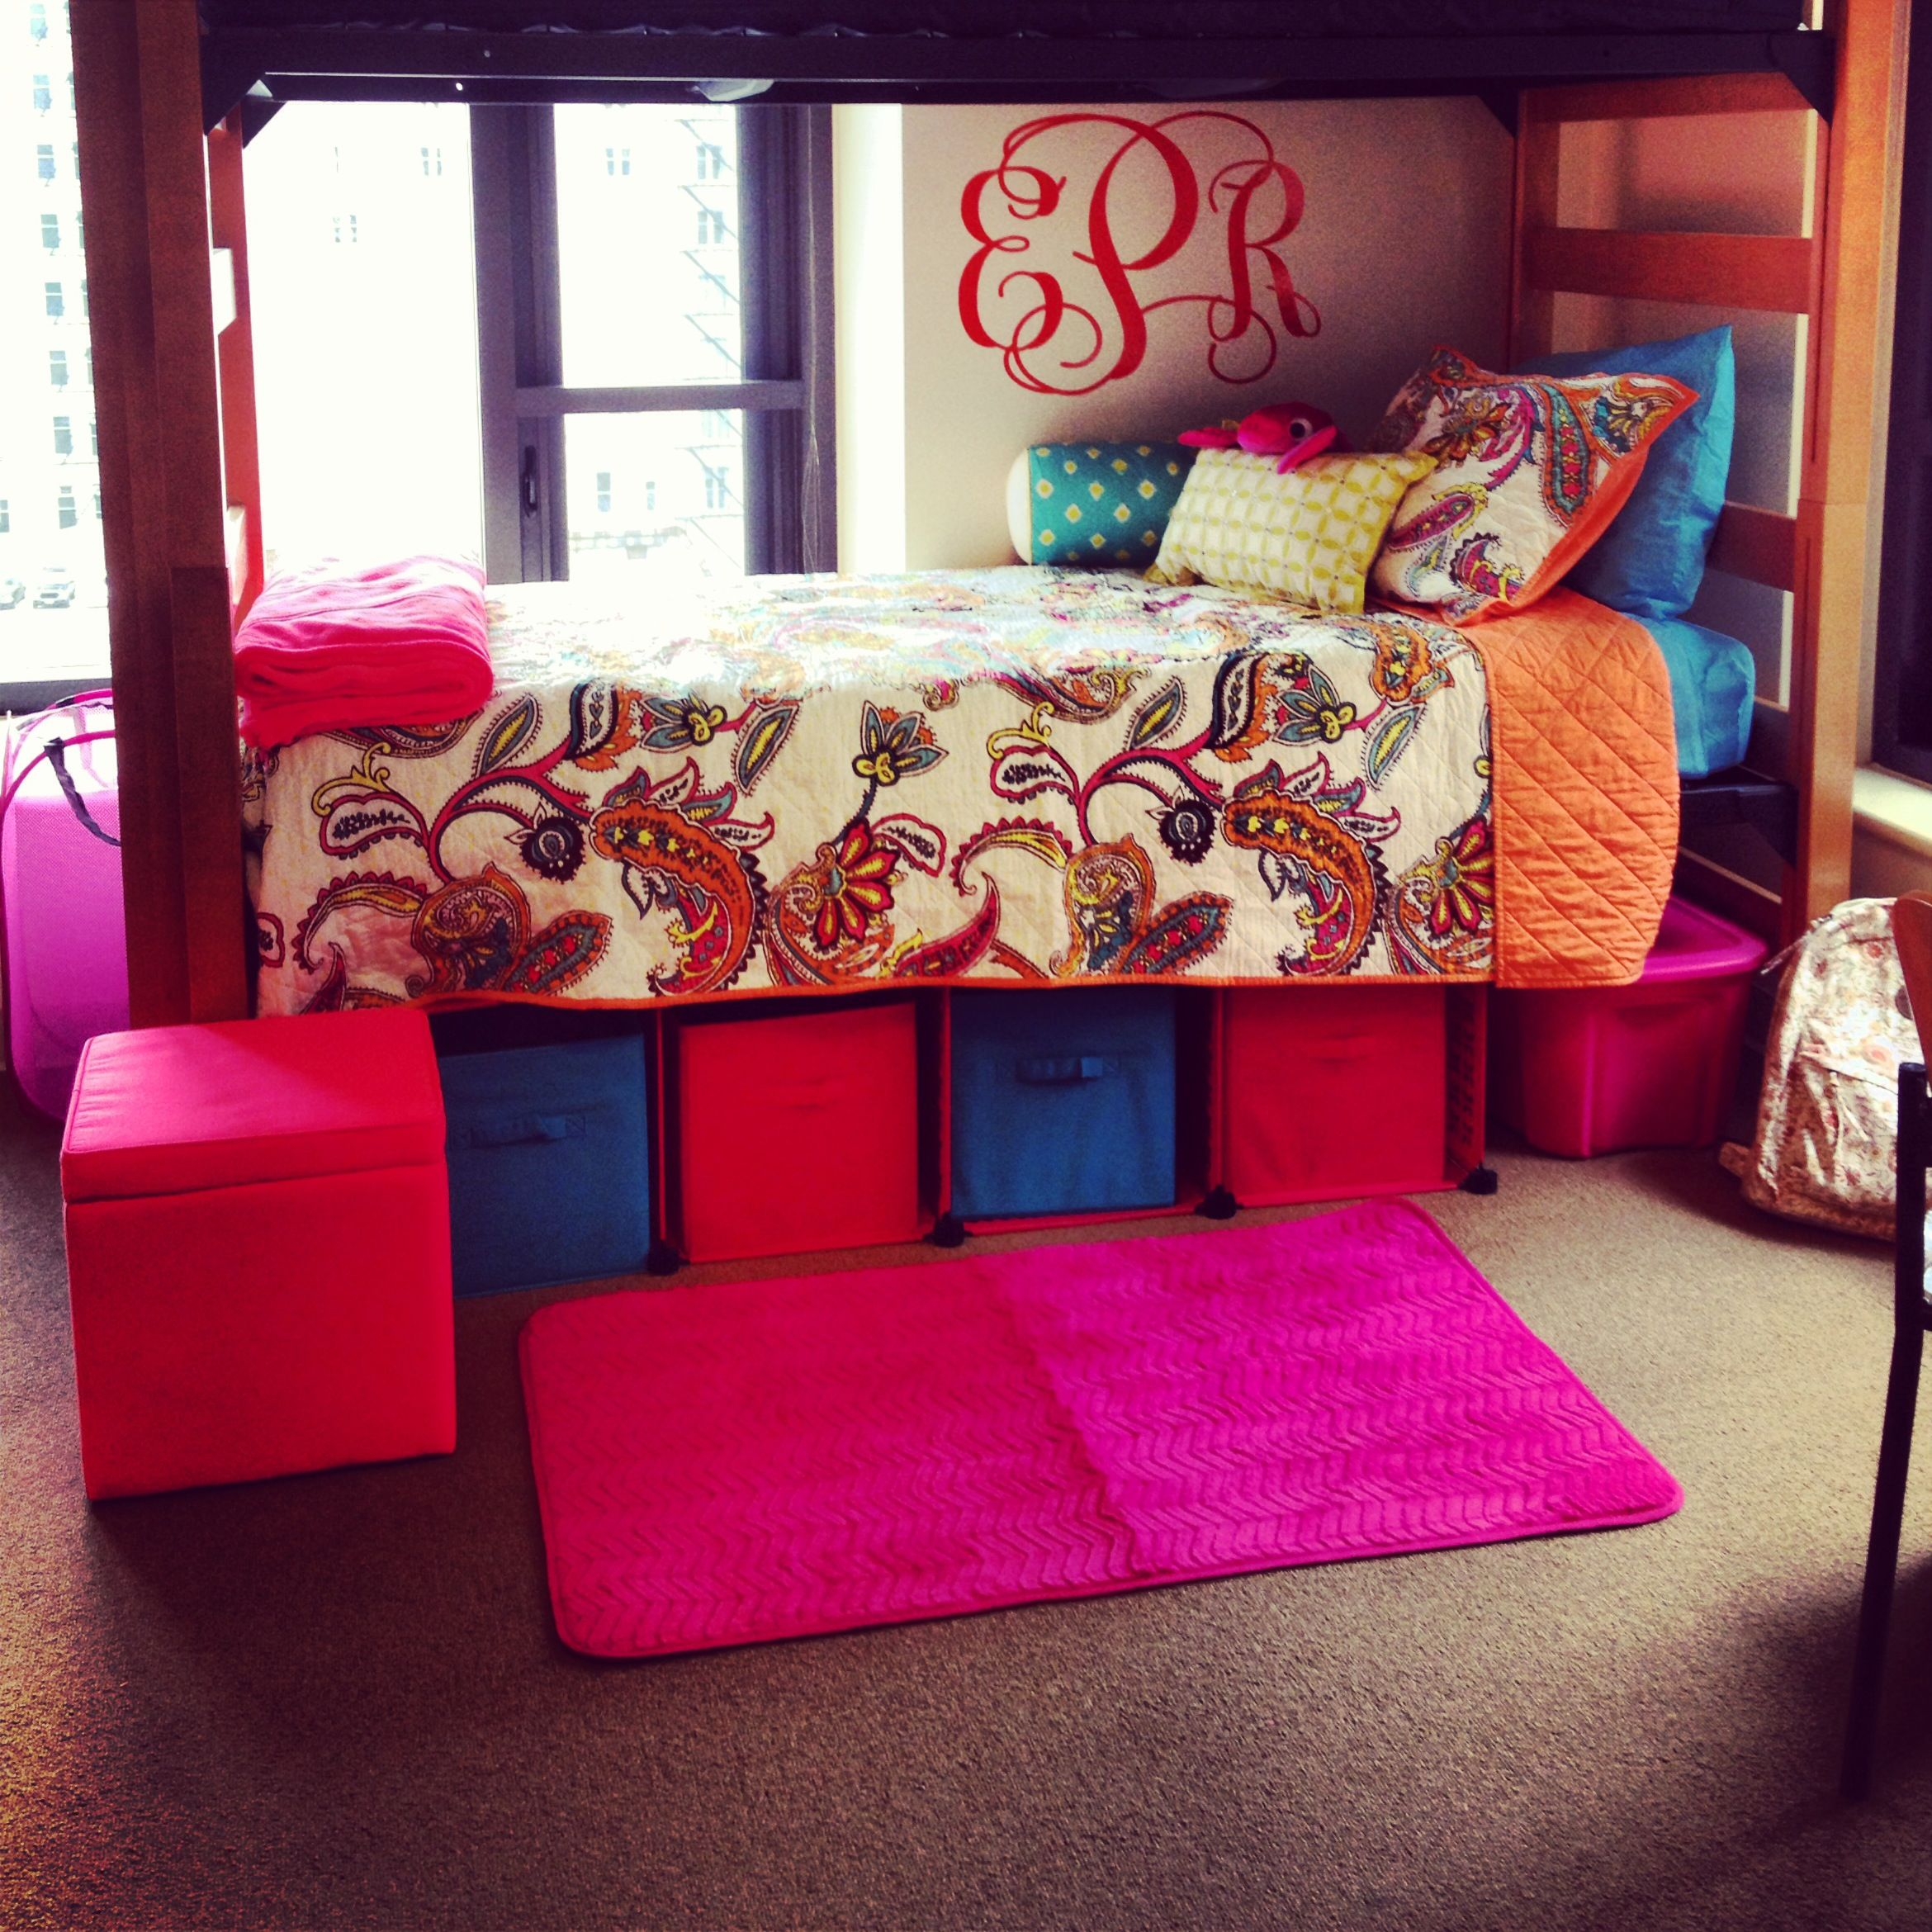 Colorful dorm room decor we this - Dorm underbed storage ideas ...